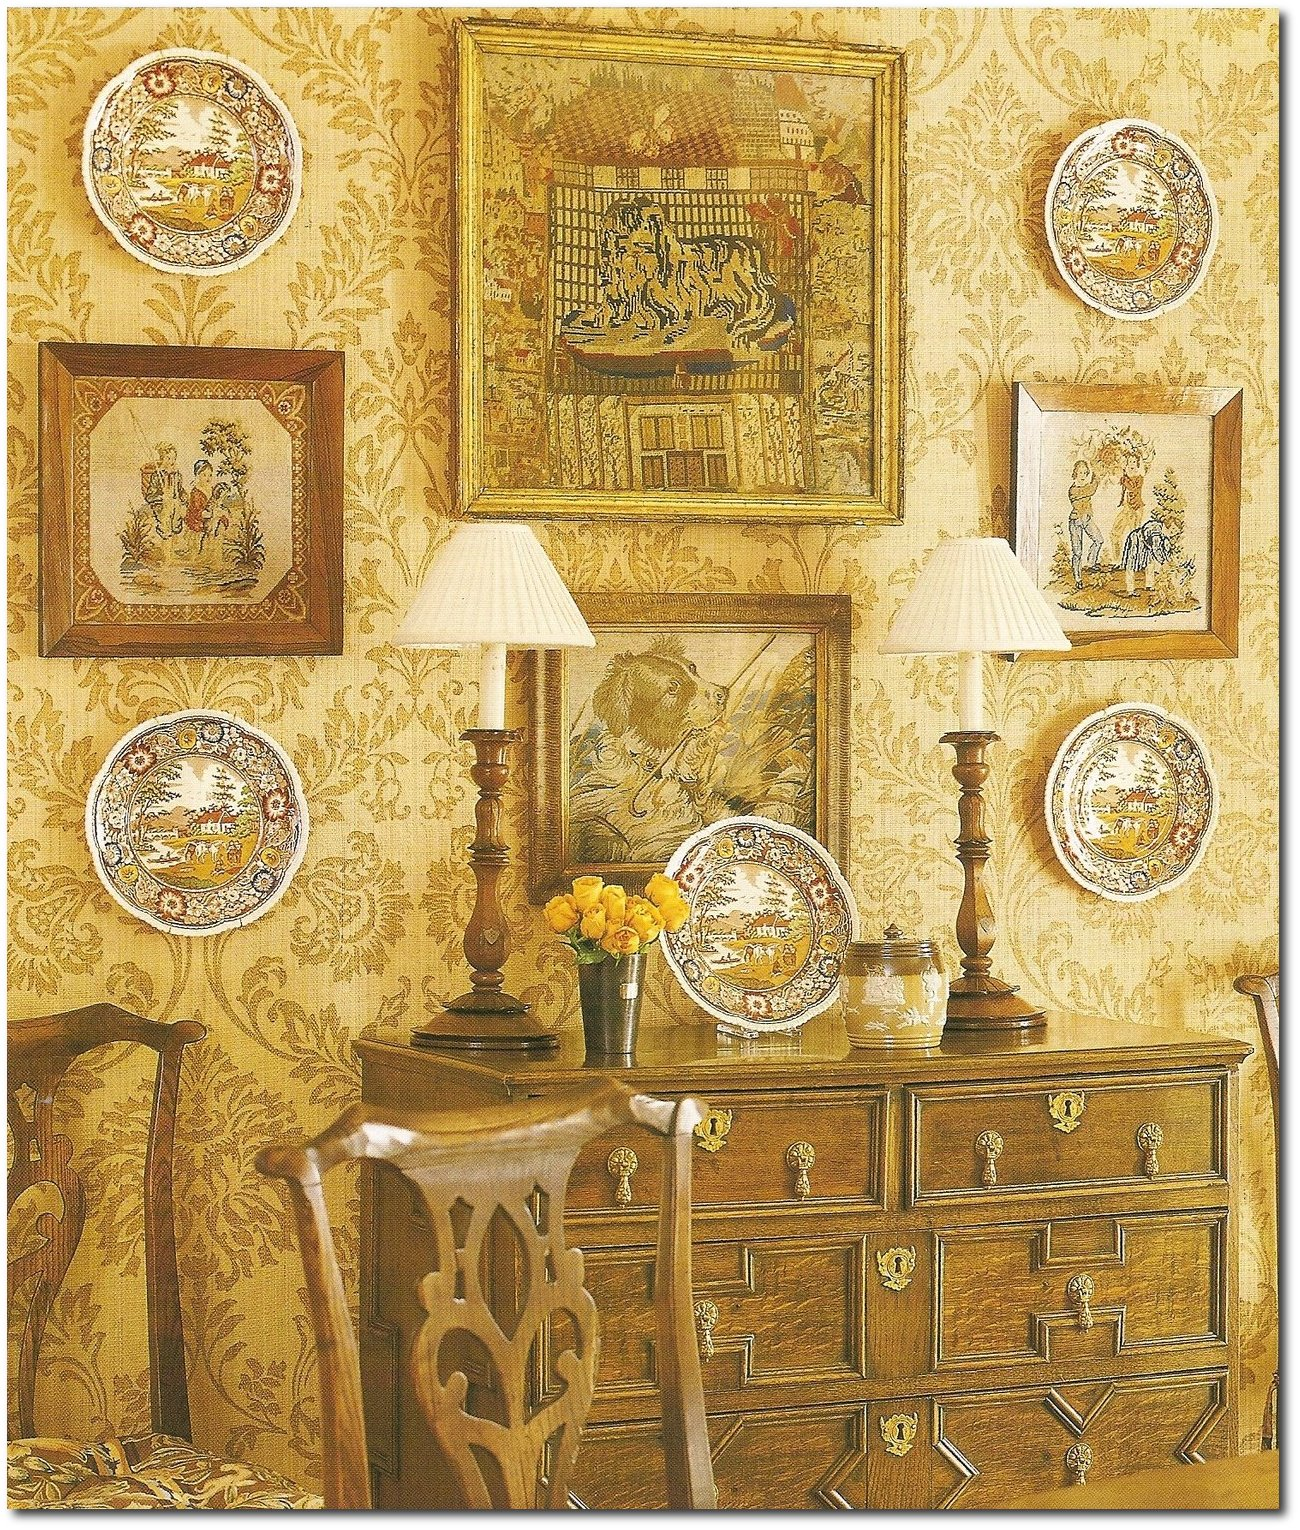 Tags empire decorating style empire style fabrics french country - Easy Country Provence Decorating 7 Ways To Get The Look